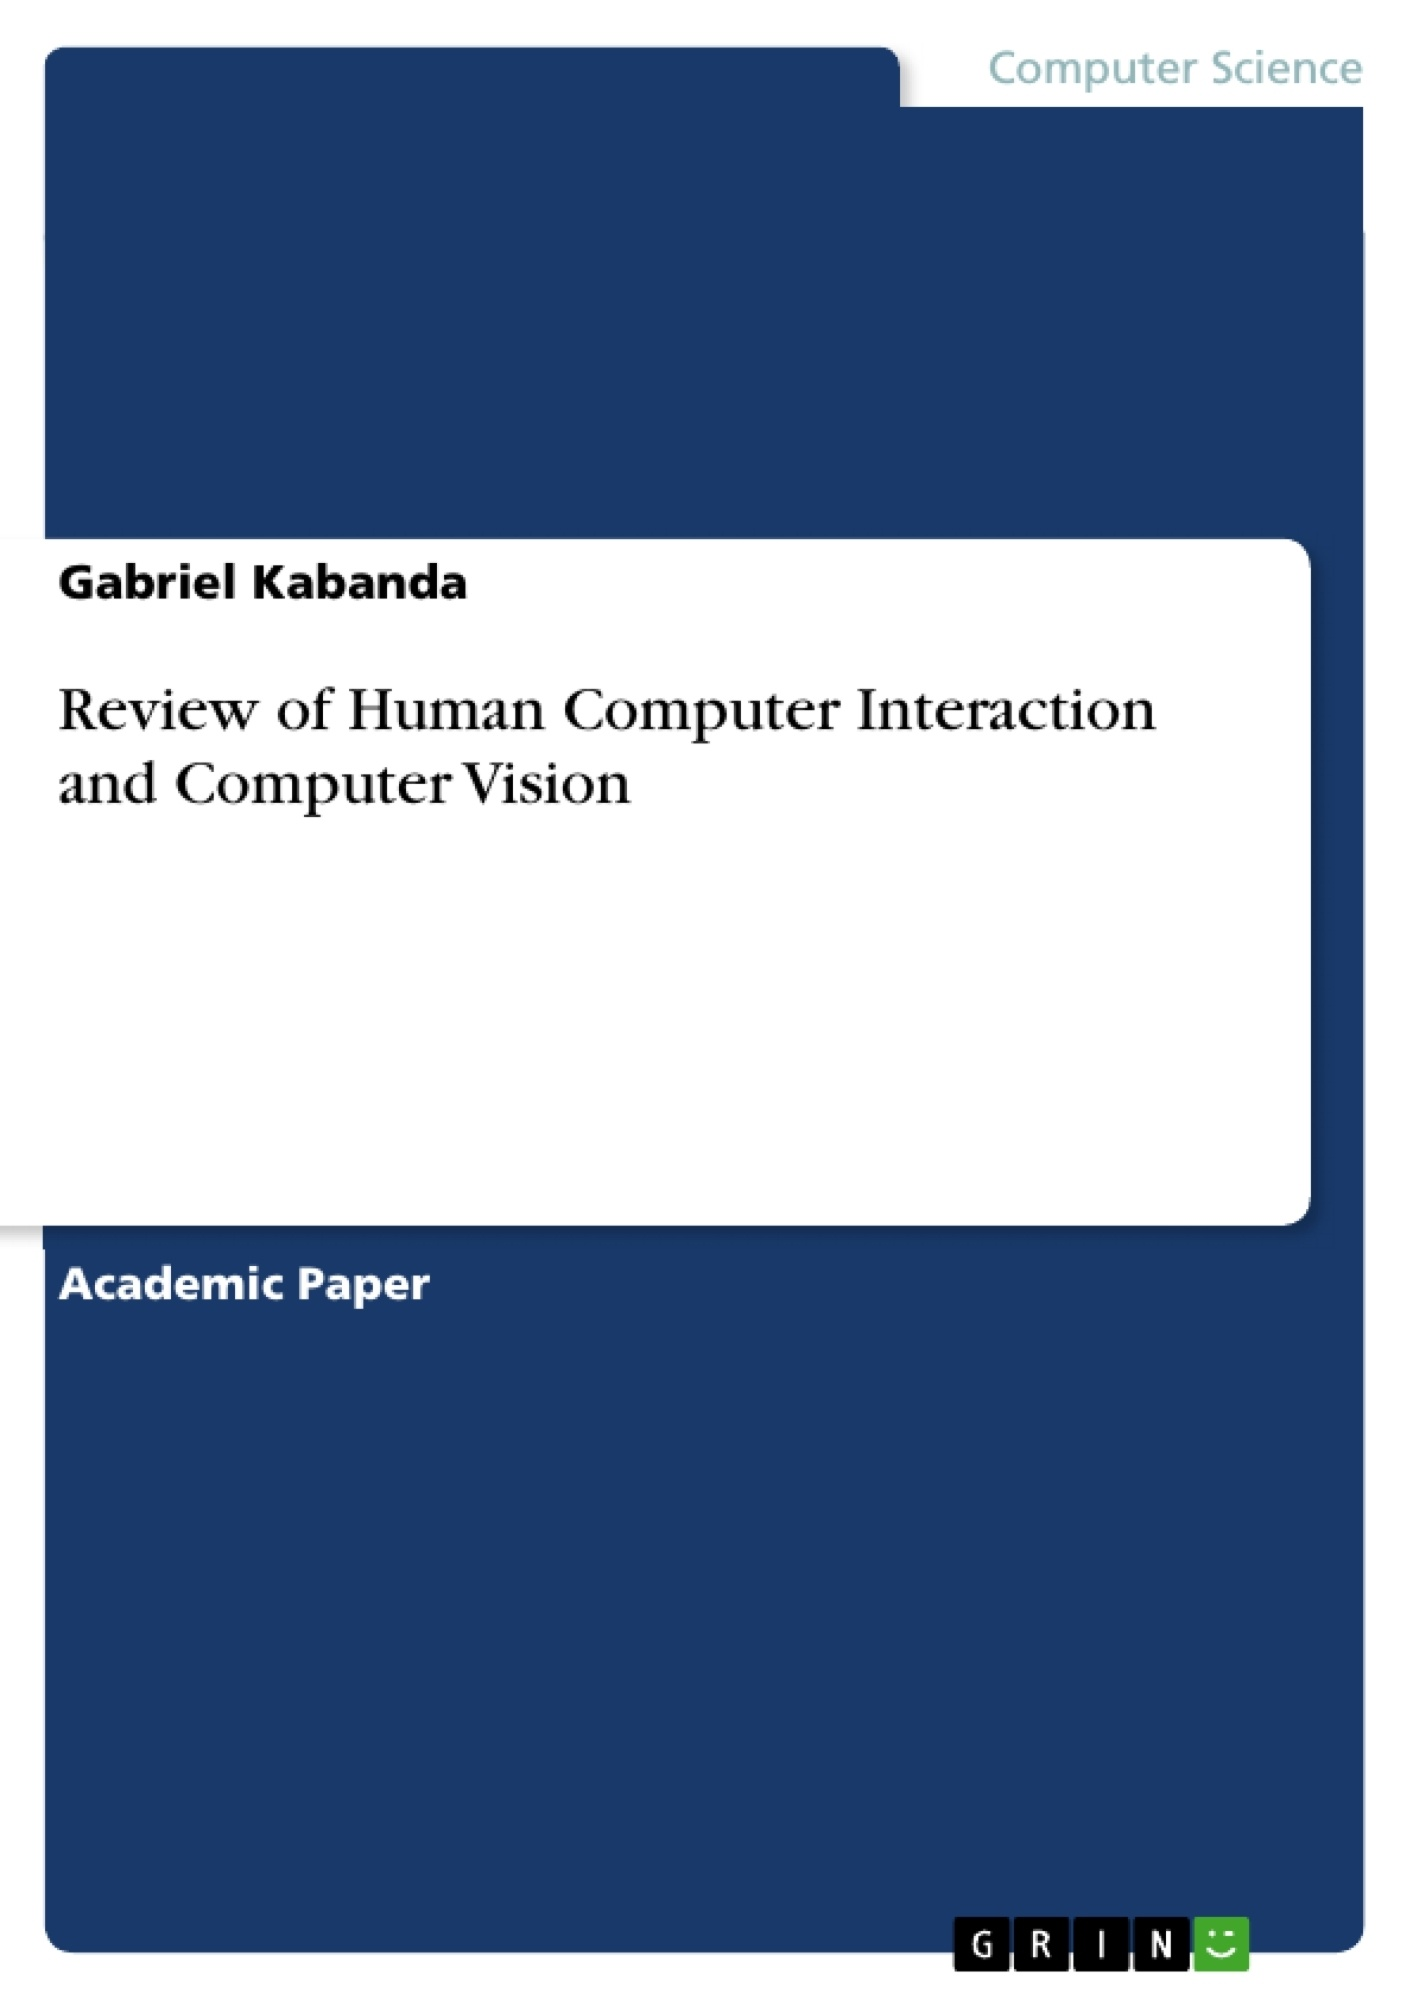 Title: Review of Human Computer Interaction and Computer Vision